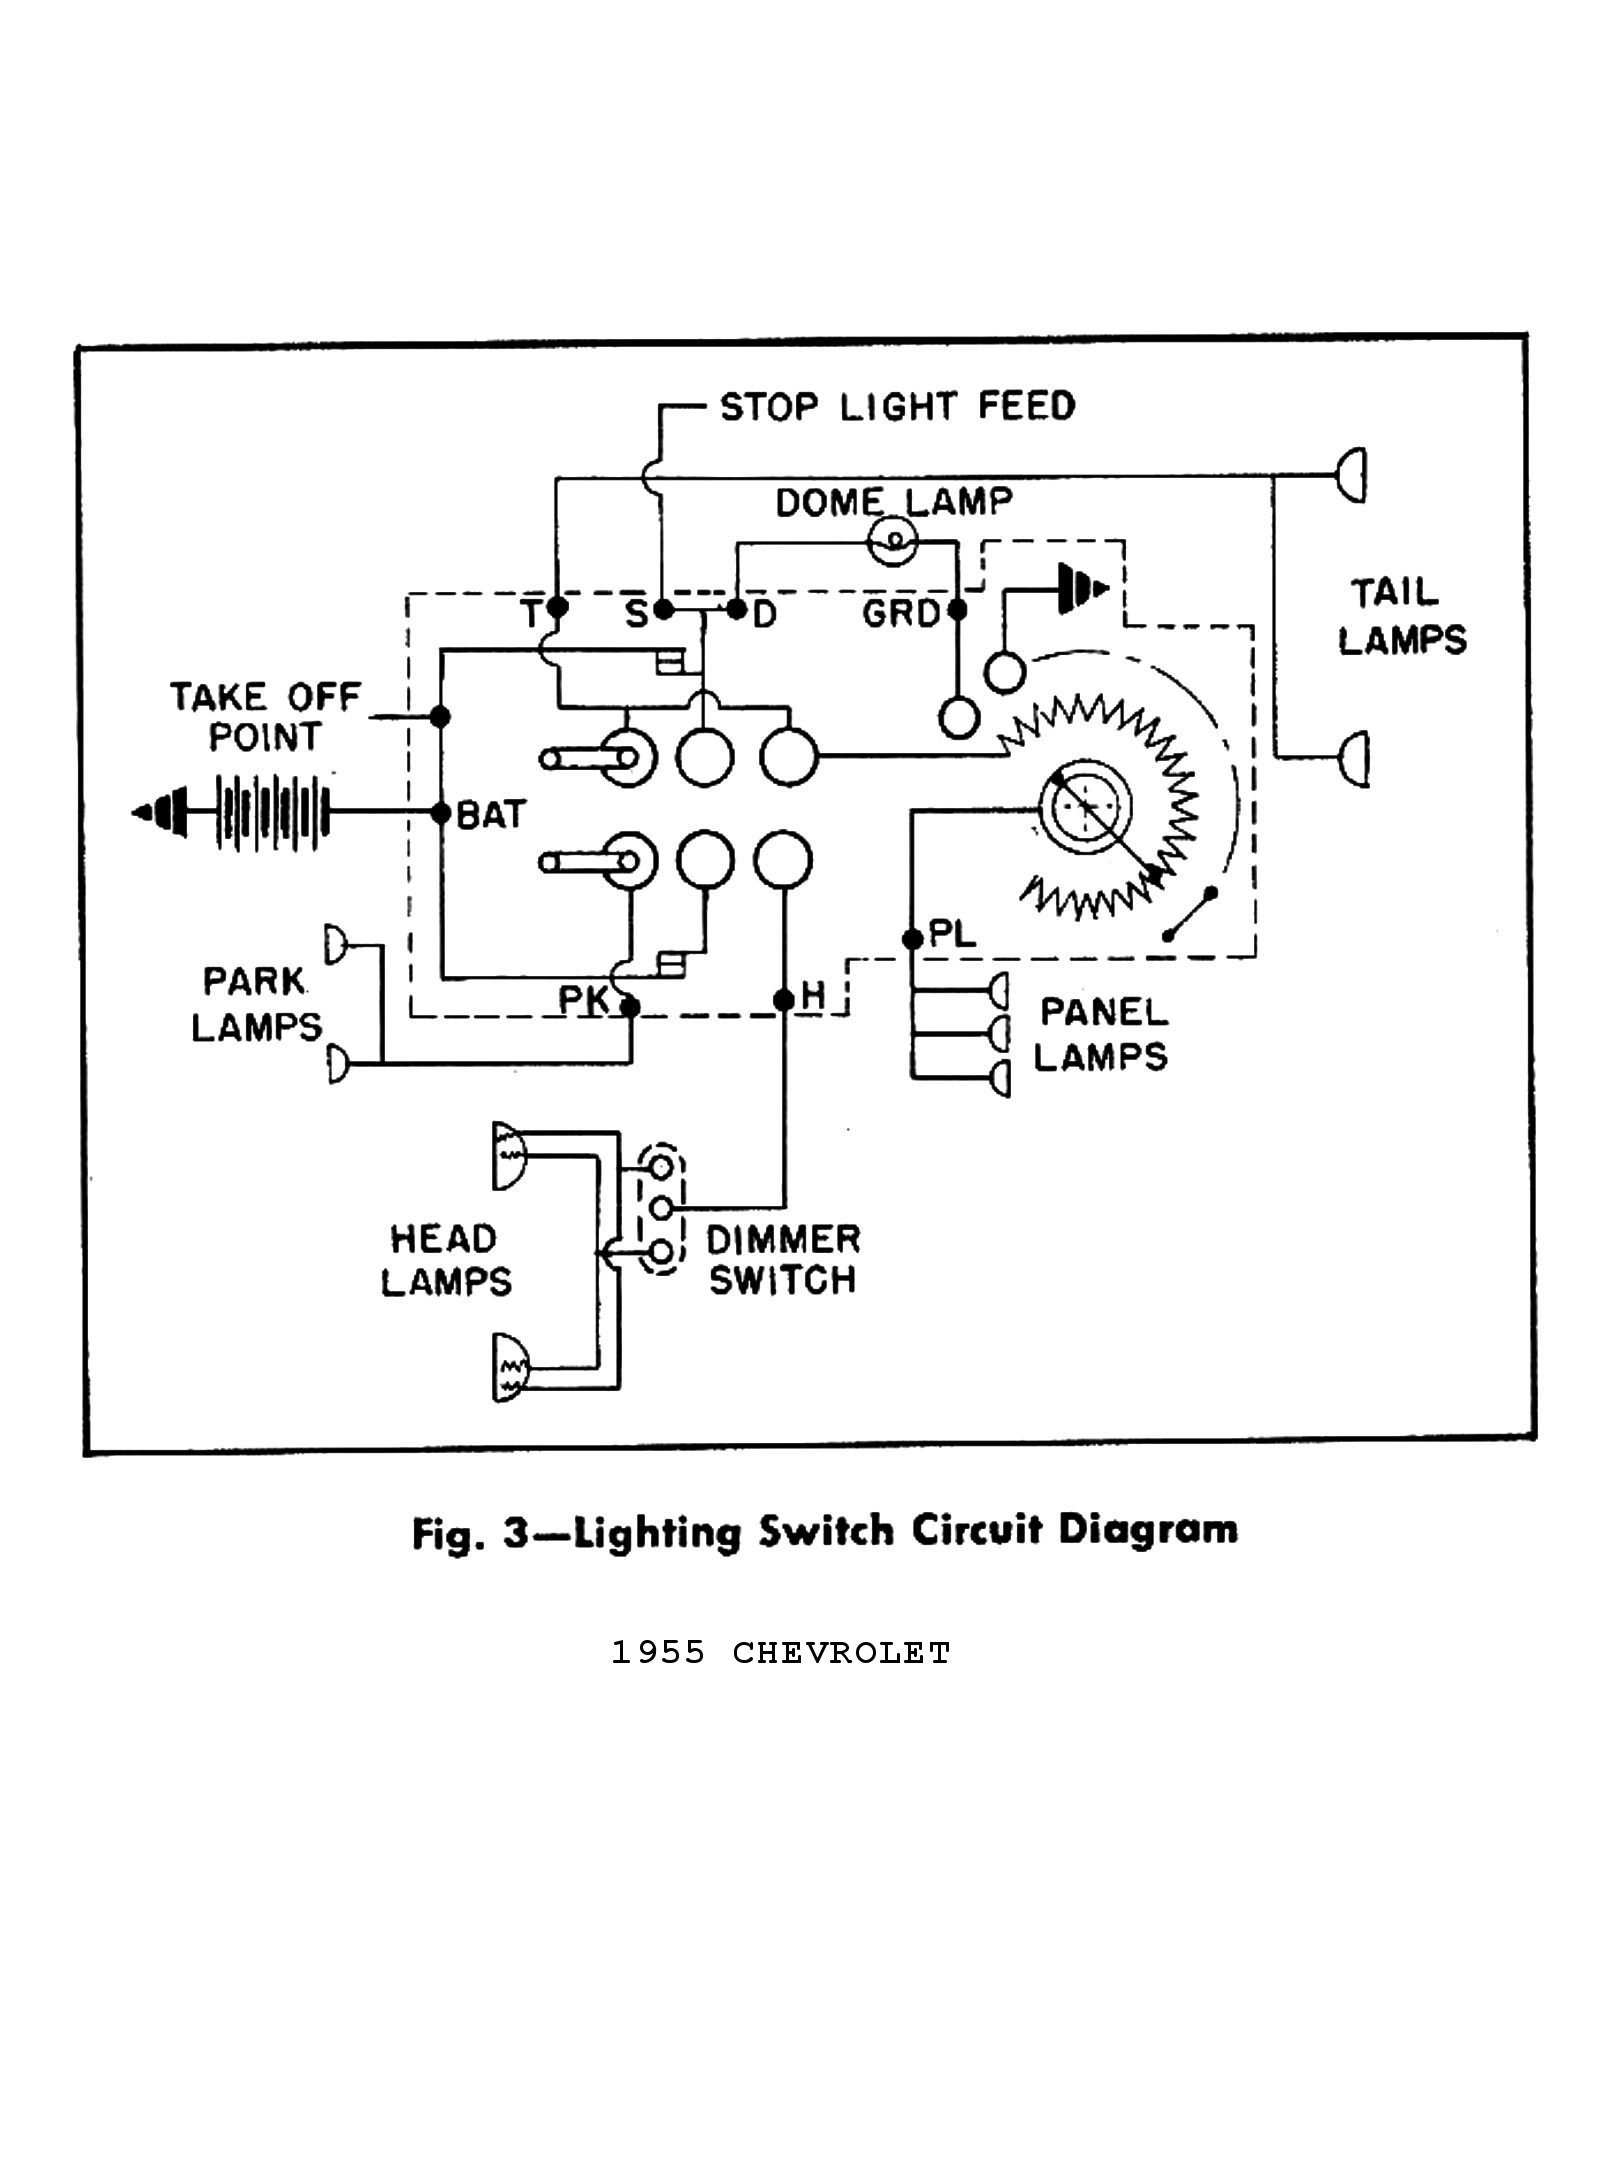 C Headlight Switch Wiring Diagram on 55 chevy headlight switch diagram, headlight switch parts, headlight adjustment diagram, cruise control diagram, headlight switch screw, headlight switch operation, headlight bulb diagram, 3 pole switch diagram, 2005 jeep wrangler headlight diagram, universal ignition switch diagram, headlight parts diagram, headlight wire diagram, headlight dimmer switch diagram, headlight switch ford,